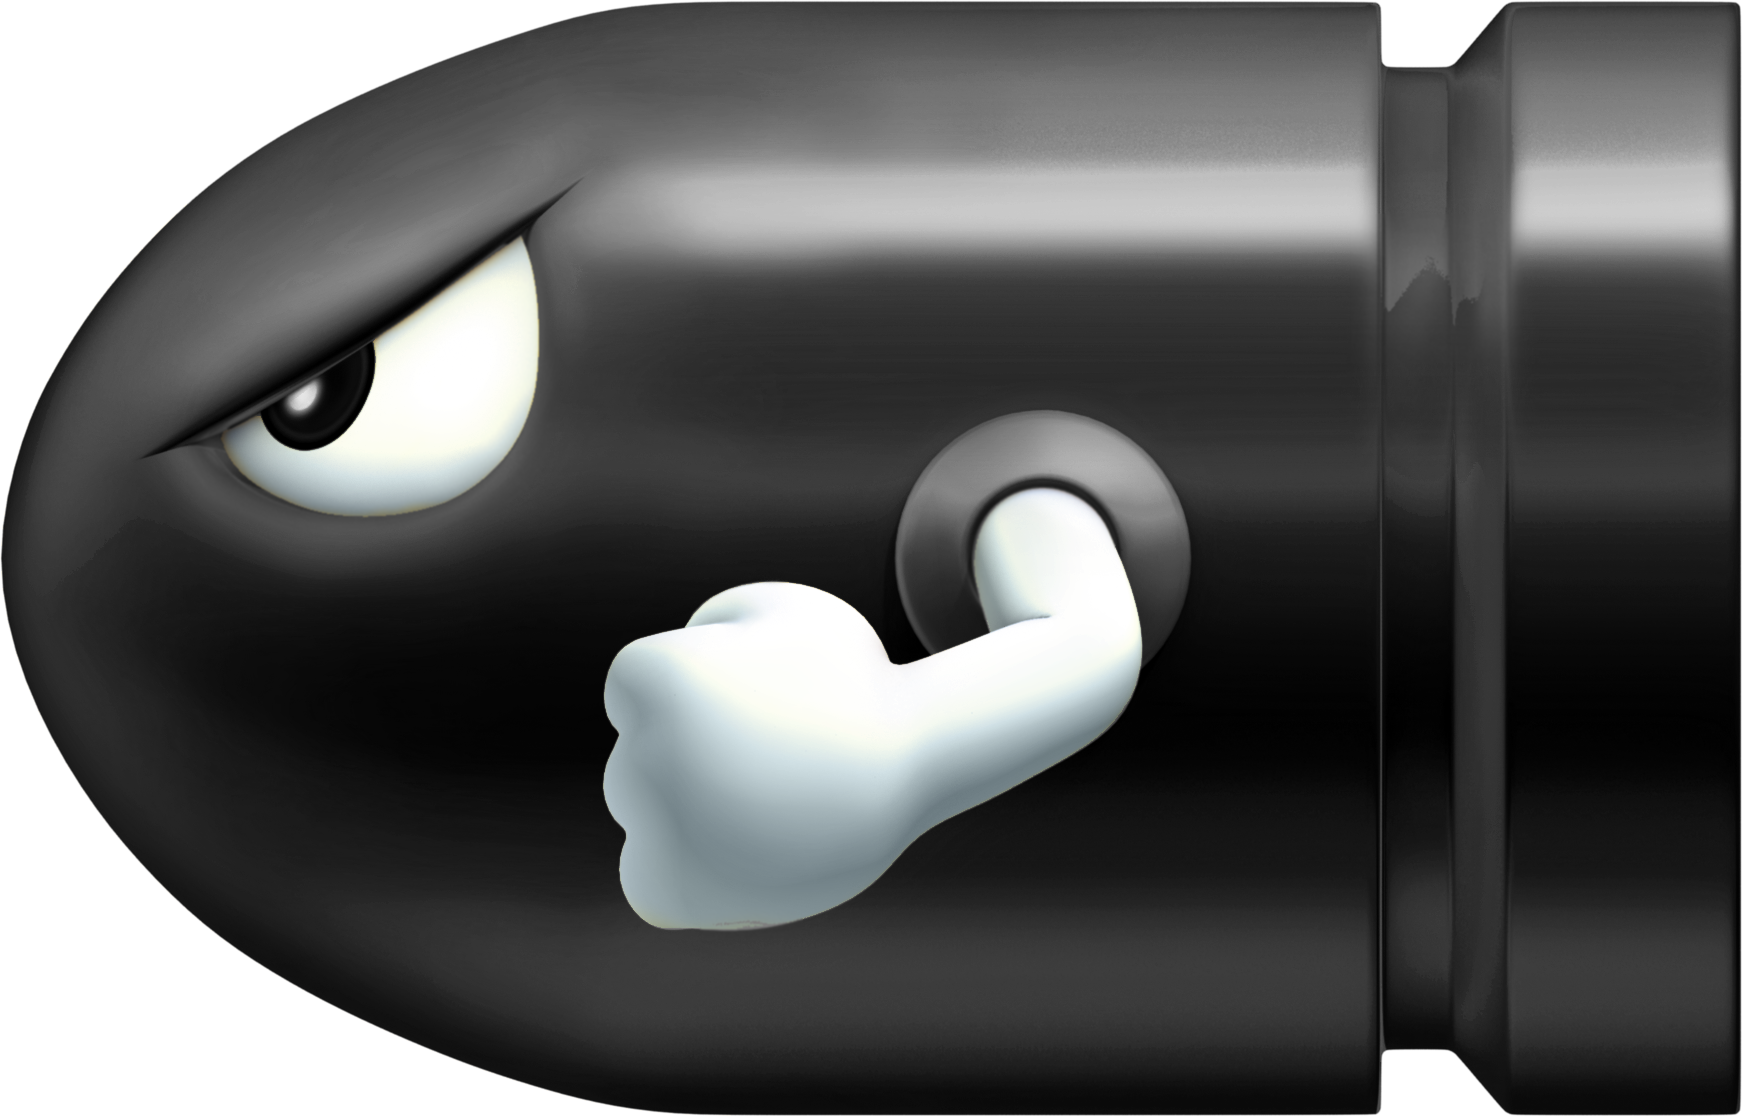 Vector bullet super mario brothers. Image result for bill